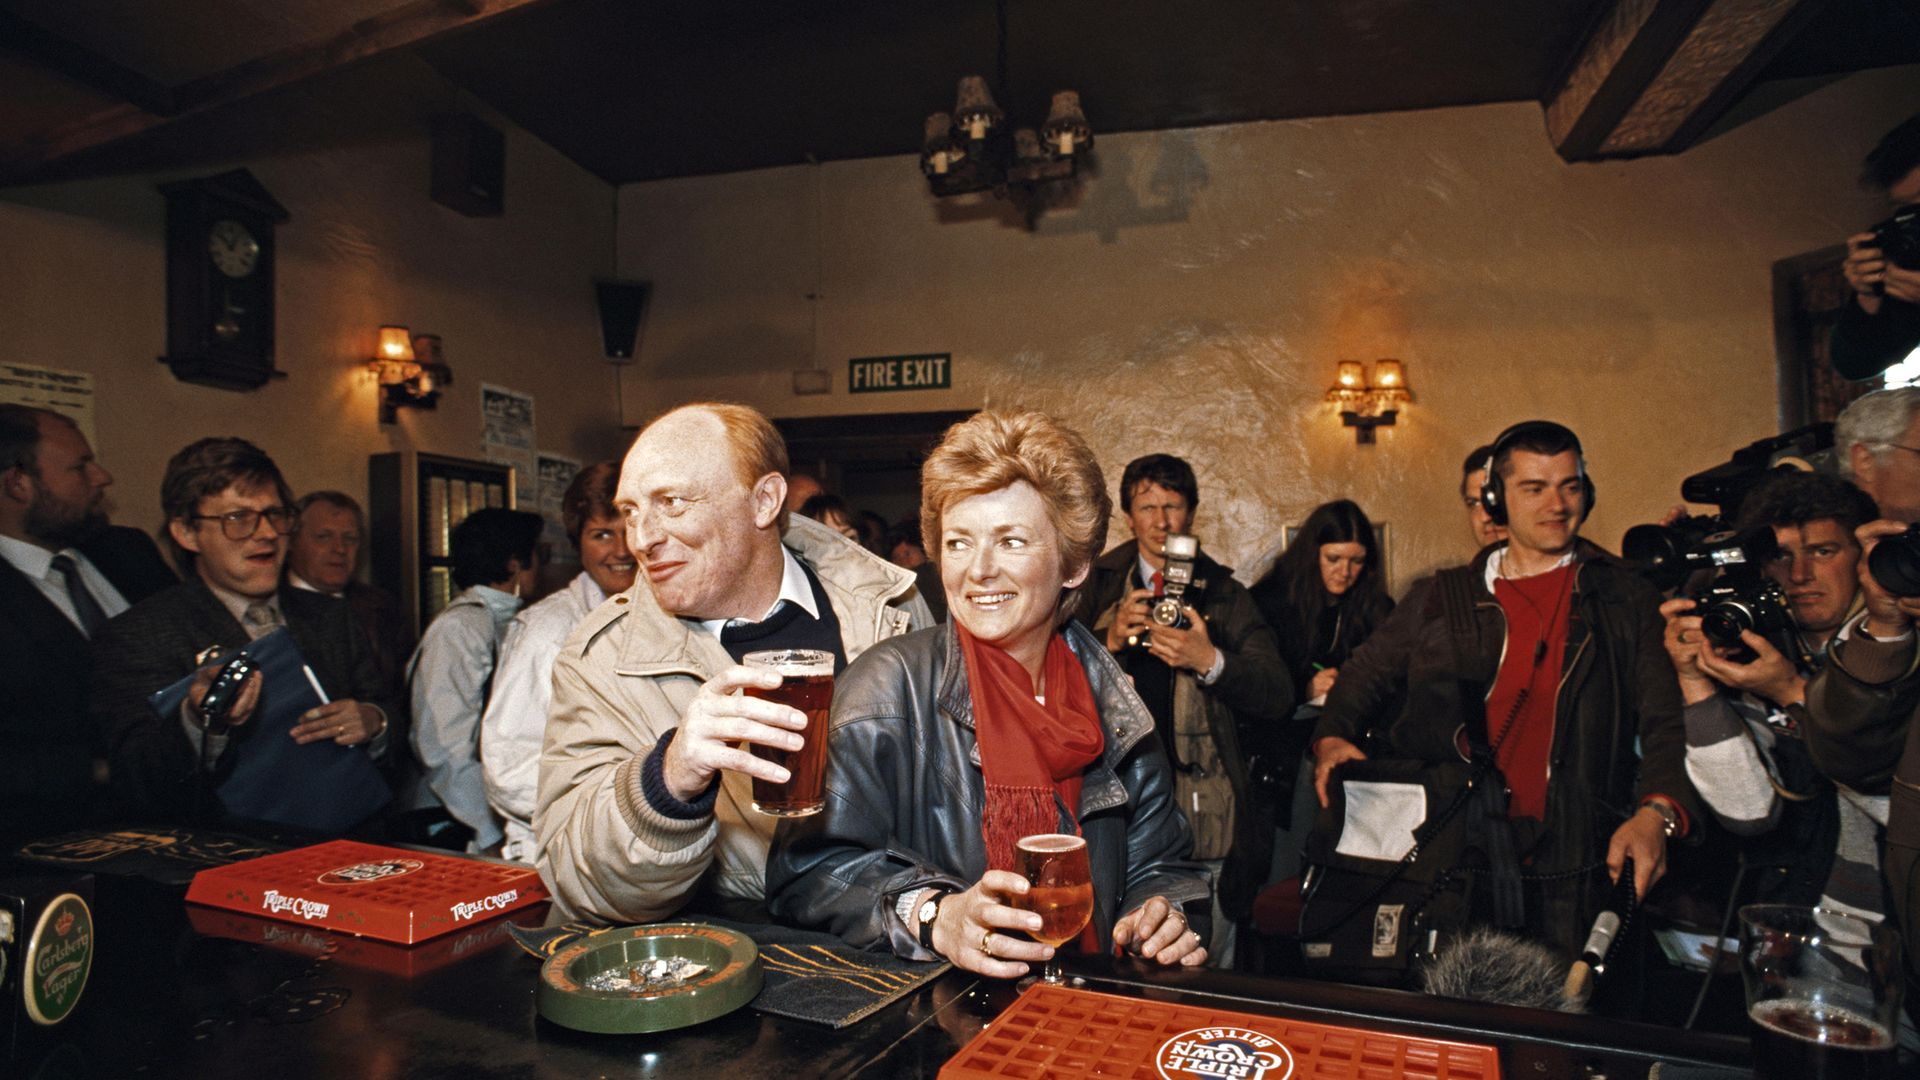 Neil Kinnock, then leader of the Labour Party, and his wife Glenys stop for drinks in a pub in Pontllanfraith, Caerphilly, during the 1987 general election campaign - Credit: Getty Images